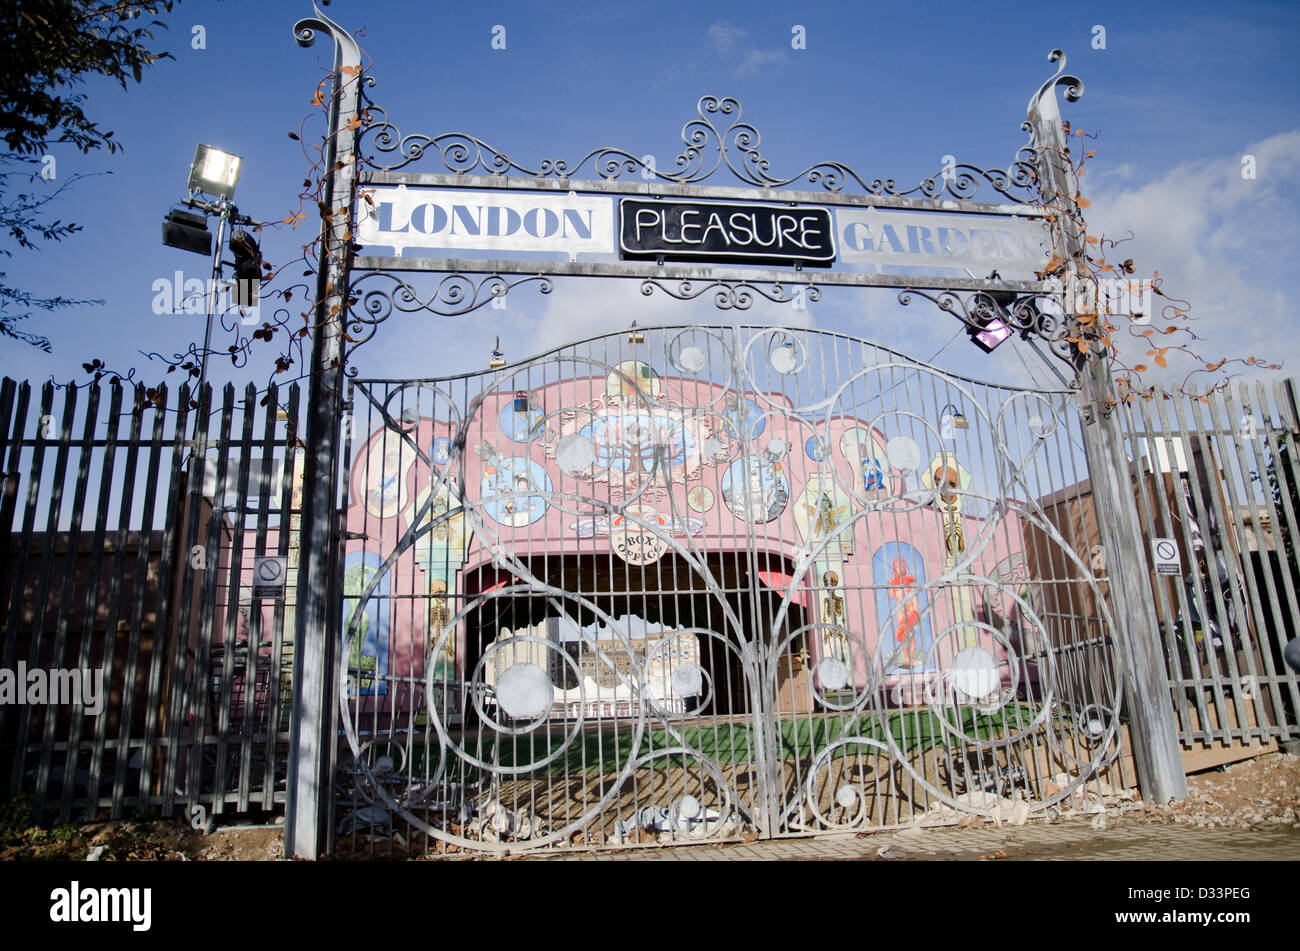 Etonnant The Entrance To The Ill Fated London Pleasure Gardens In Silvertown, In  Londonu0027s Docklands